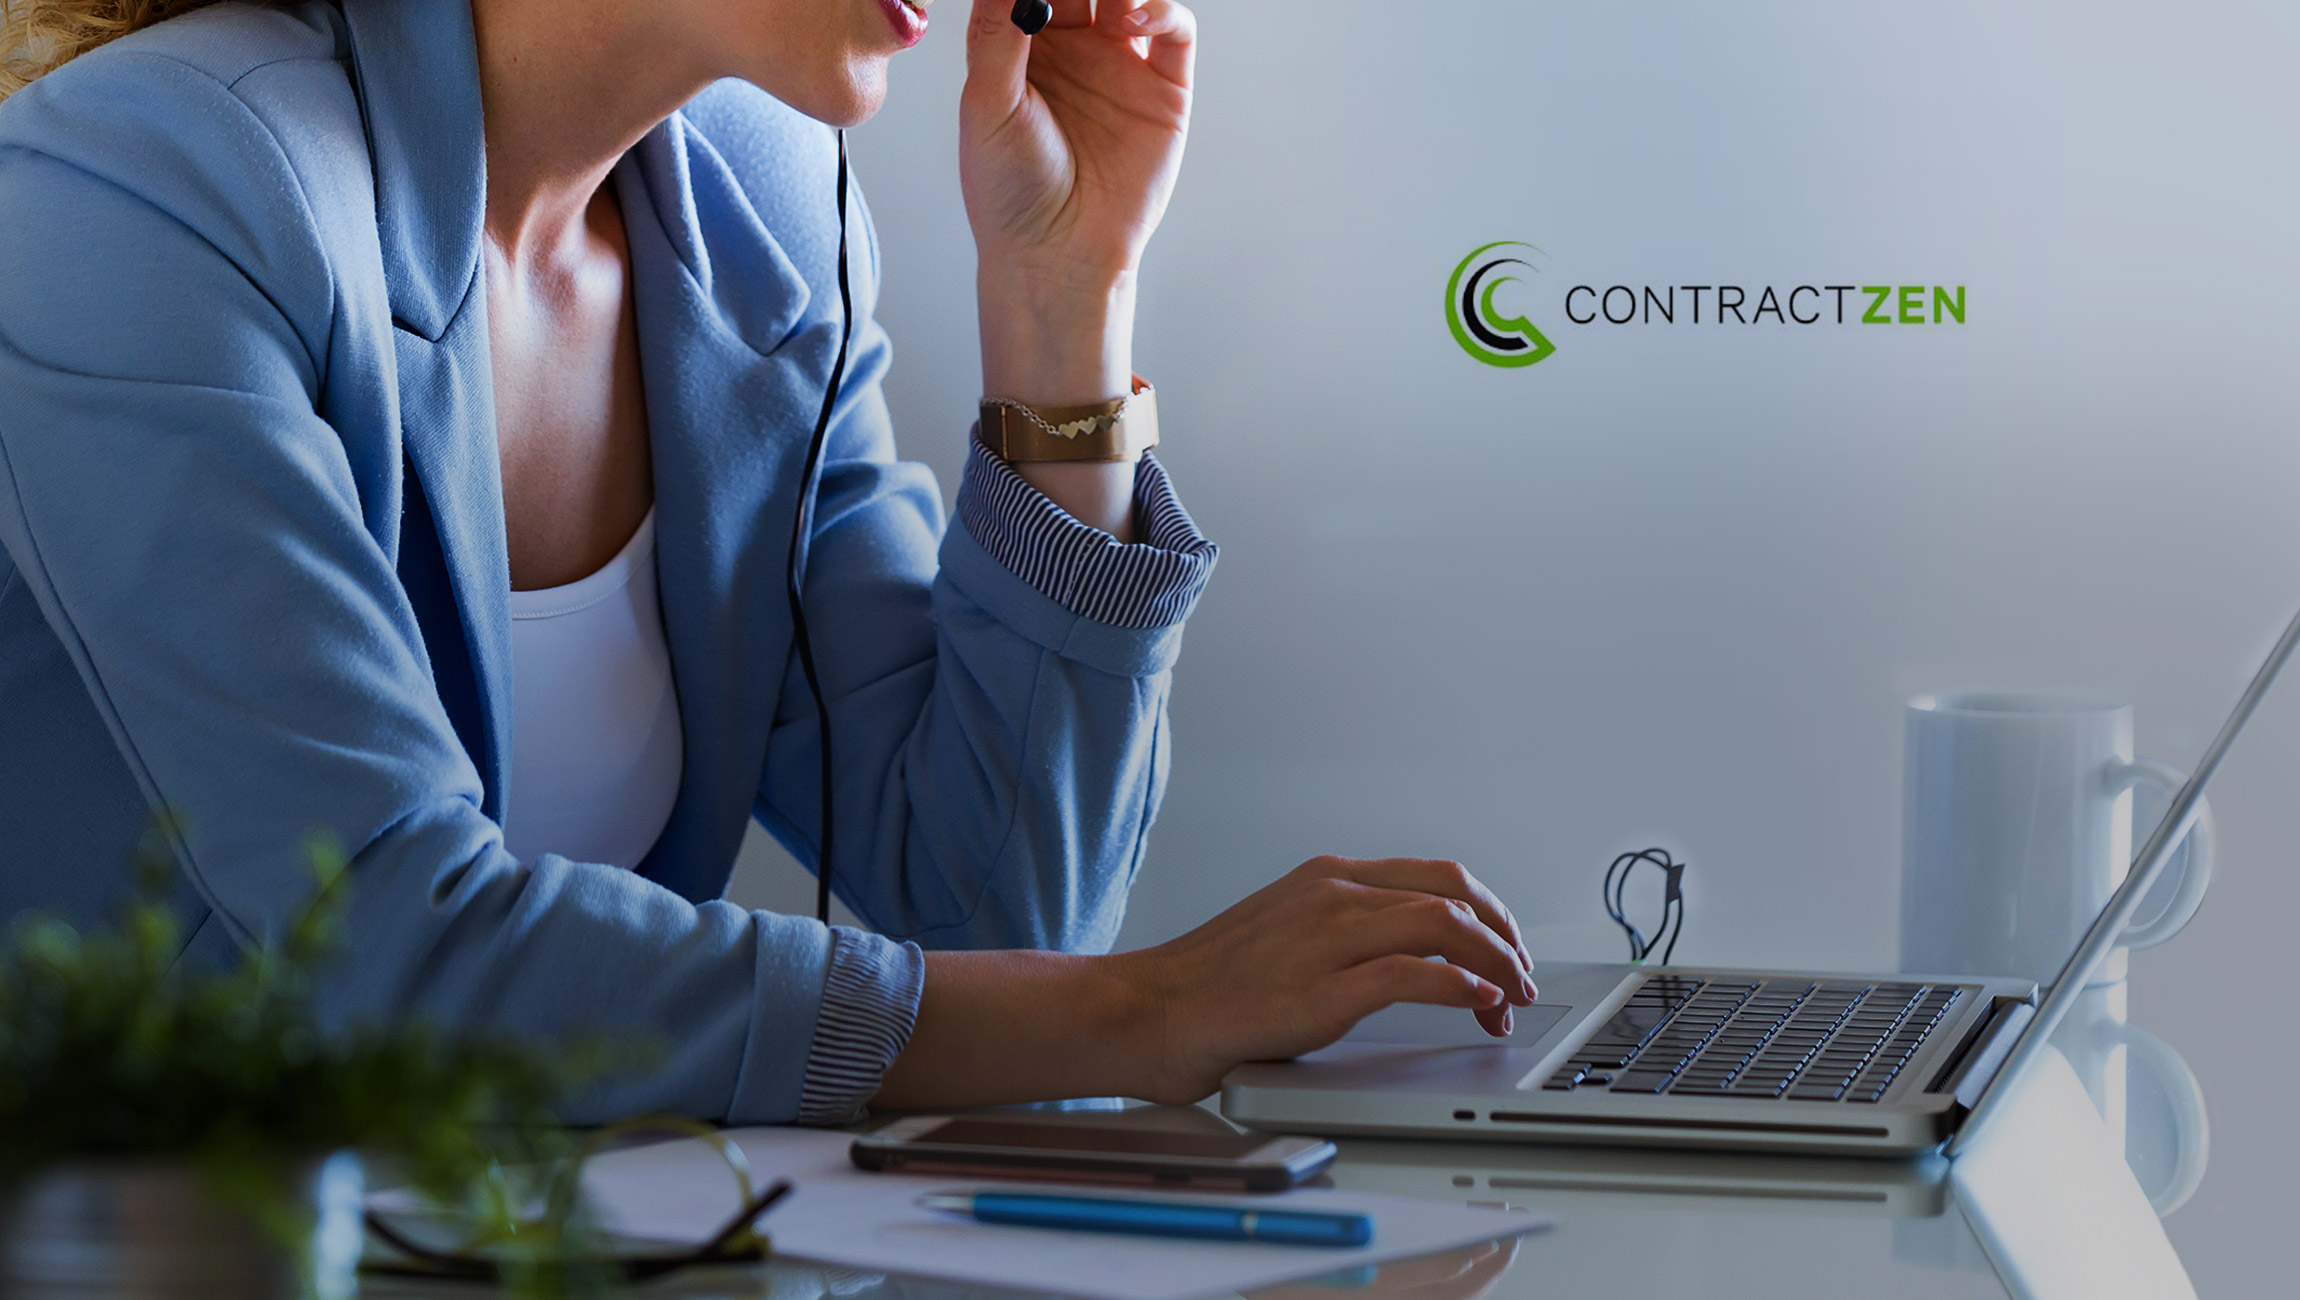 ContractZen Adds Free e-Signature Service to Its SaaS-Based Contract Management Solution